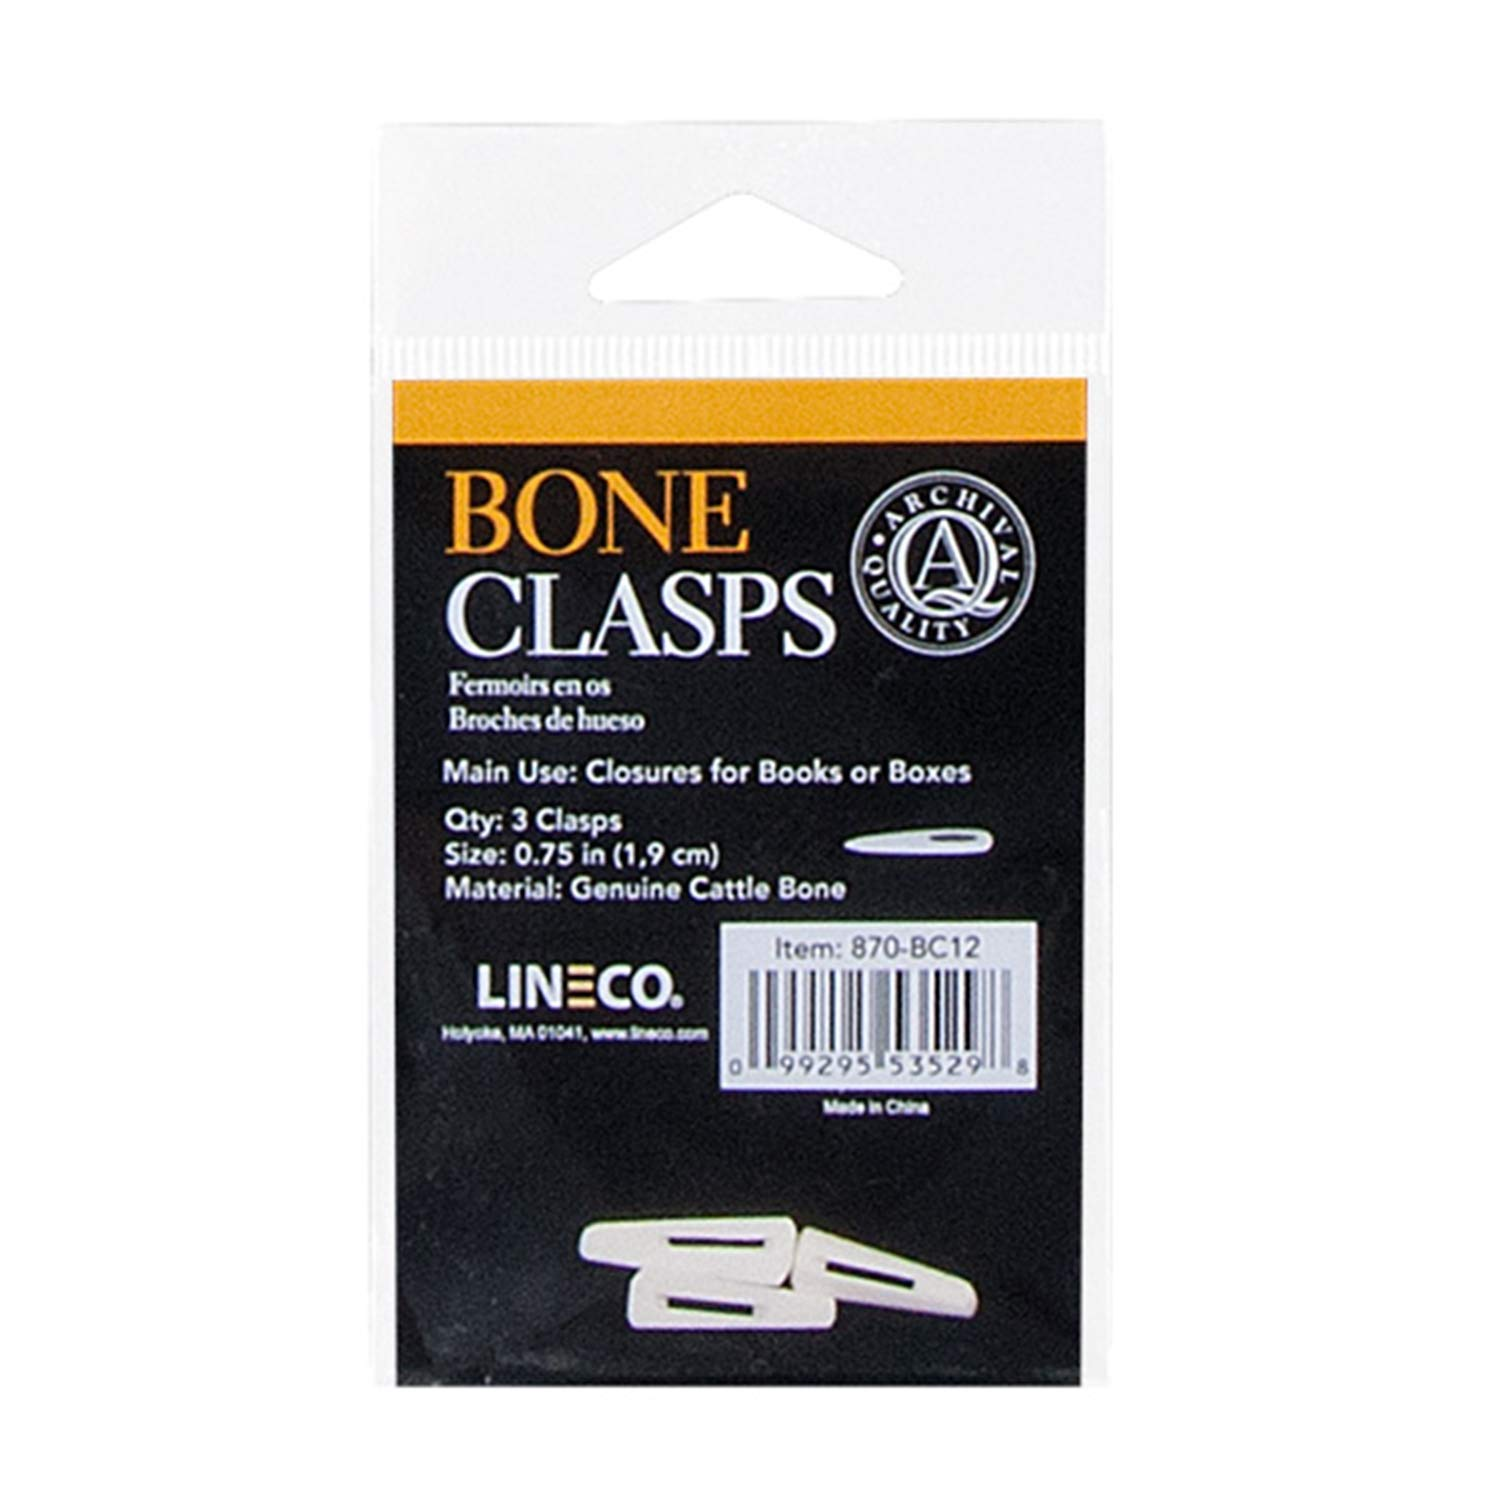 Lineco Bone Clasps for Book or Box Closure, 3/4 inches, Package of 3 (870-BC12)